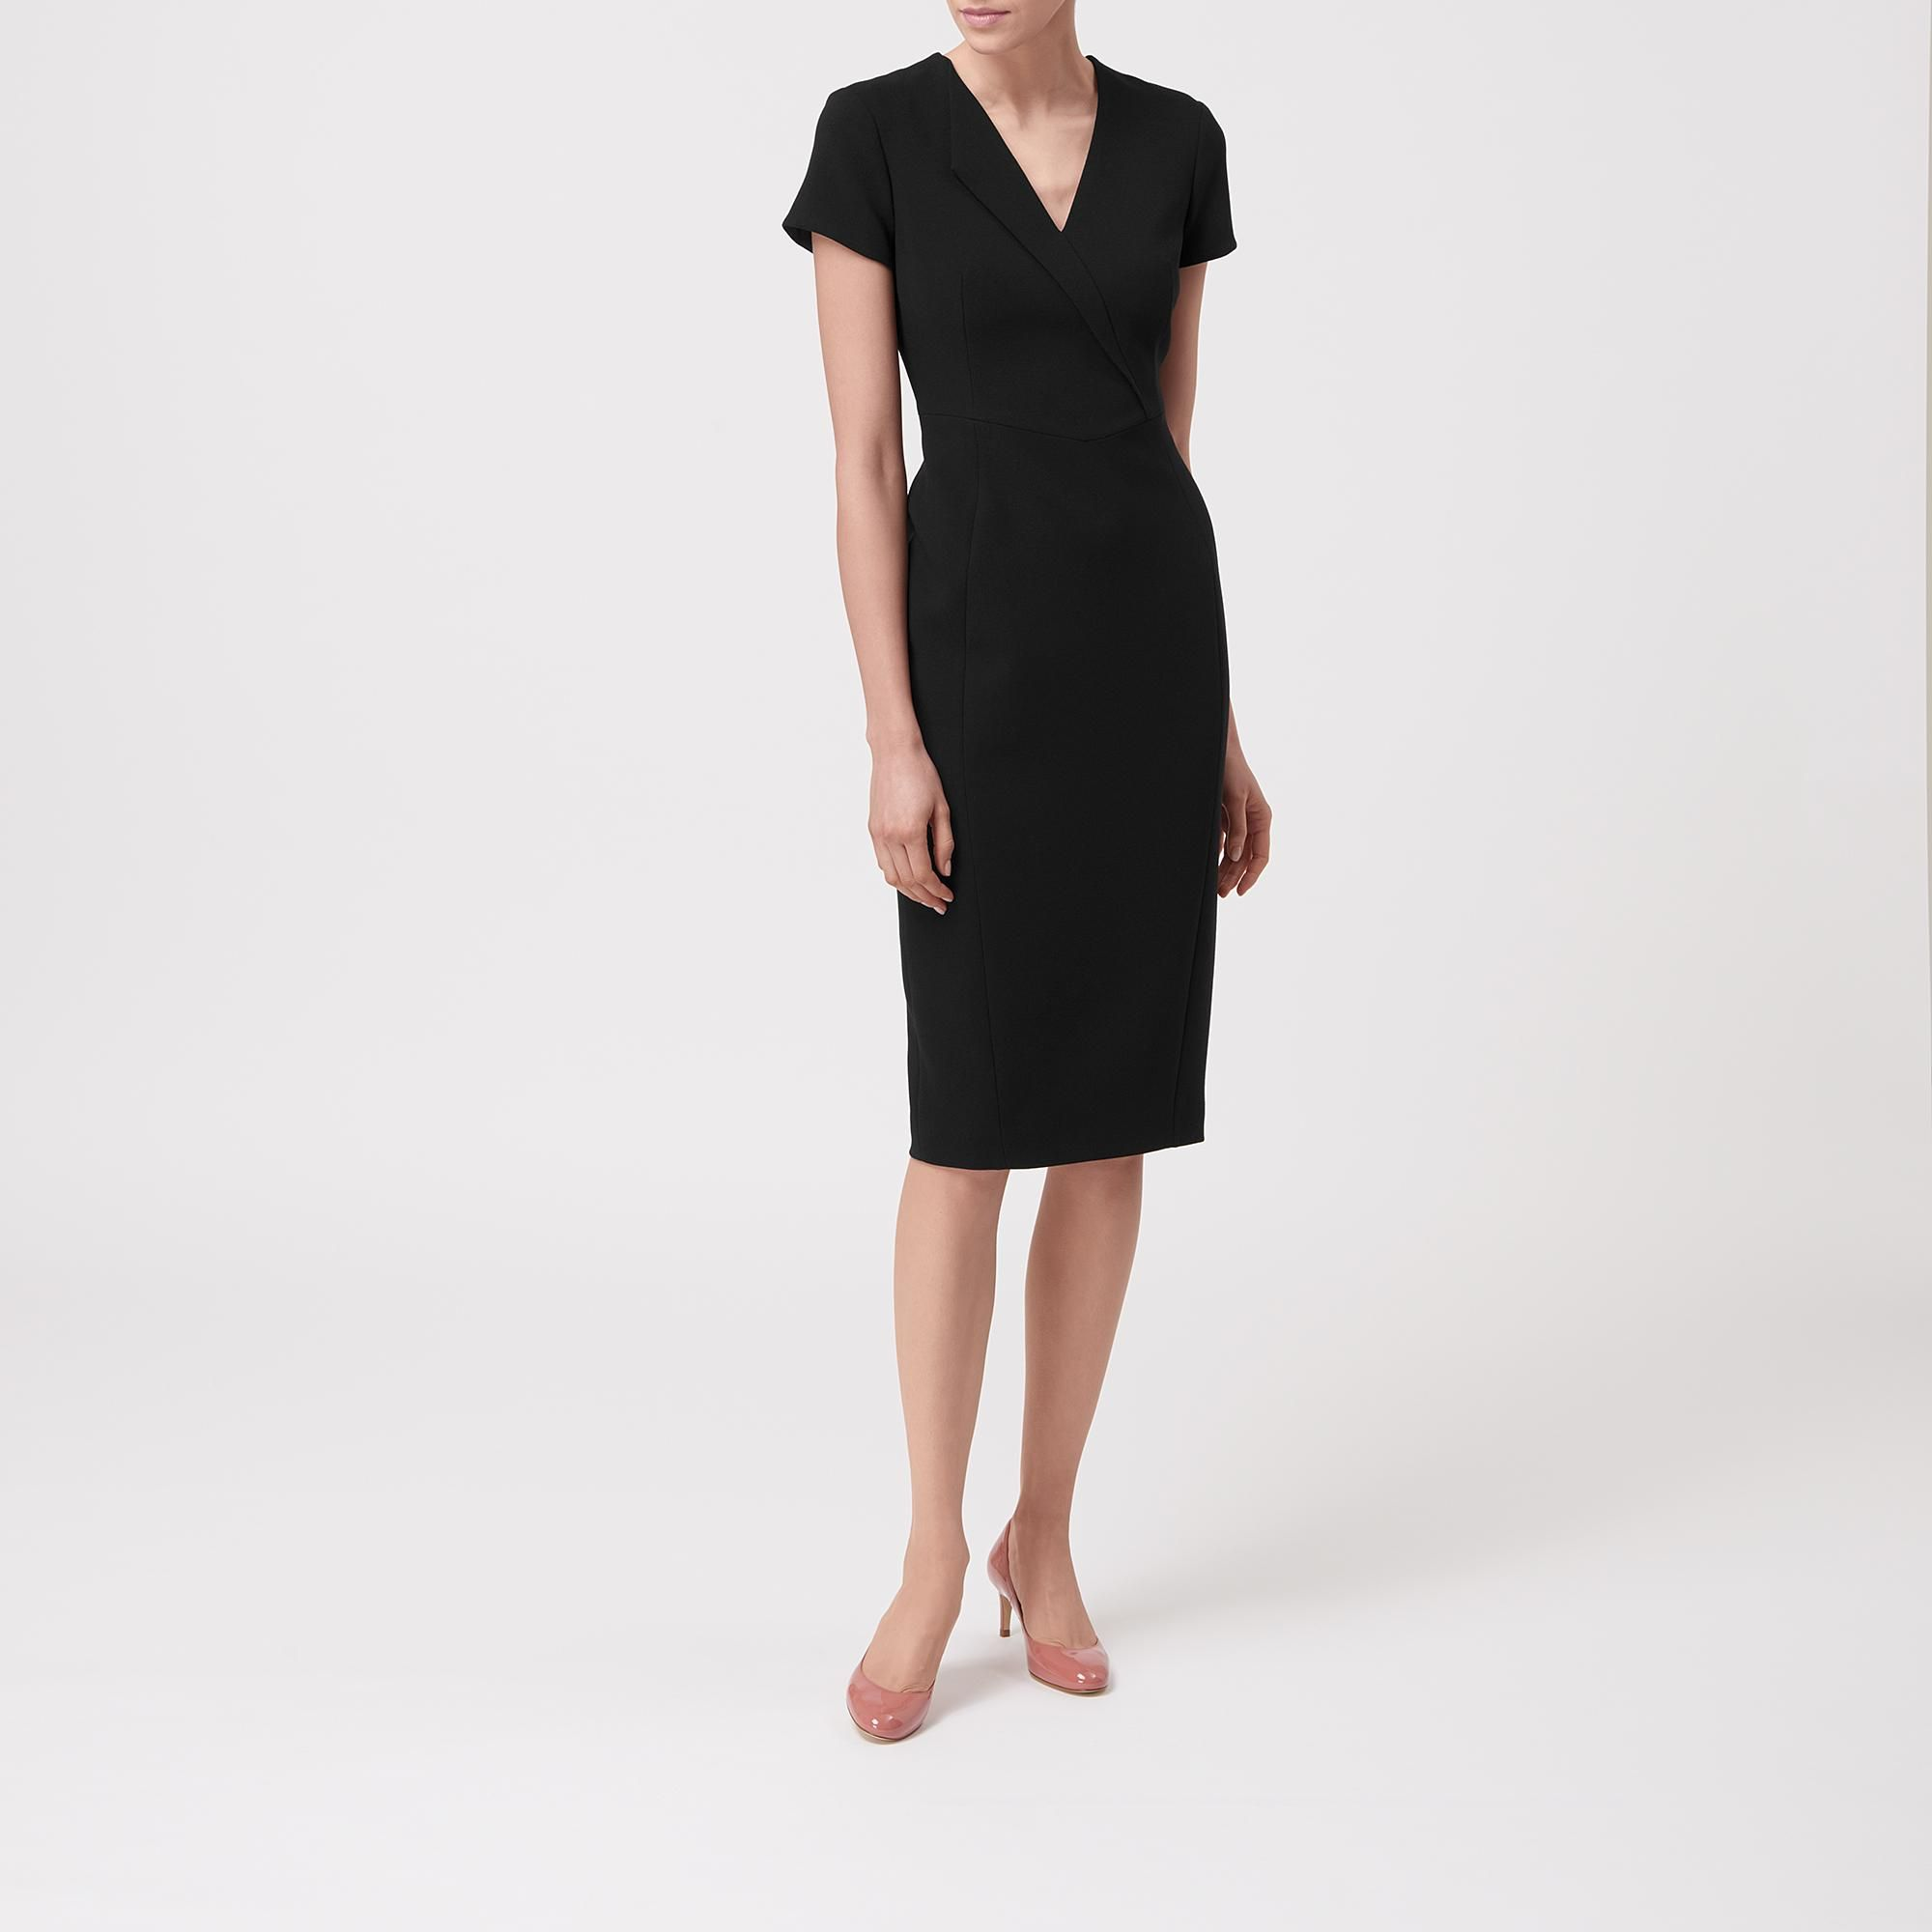 L k bennett london black dress